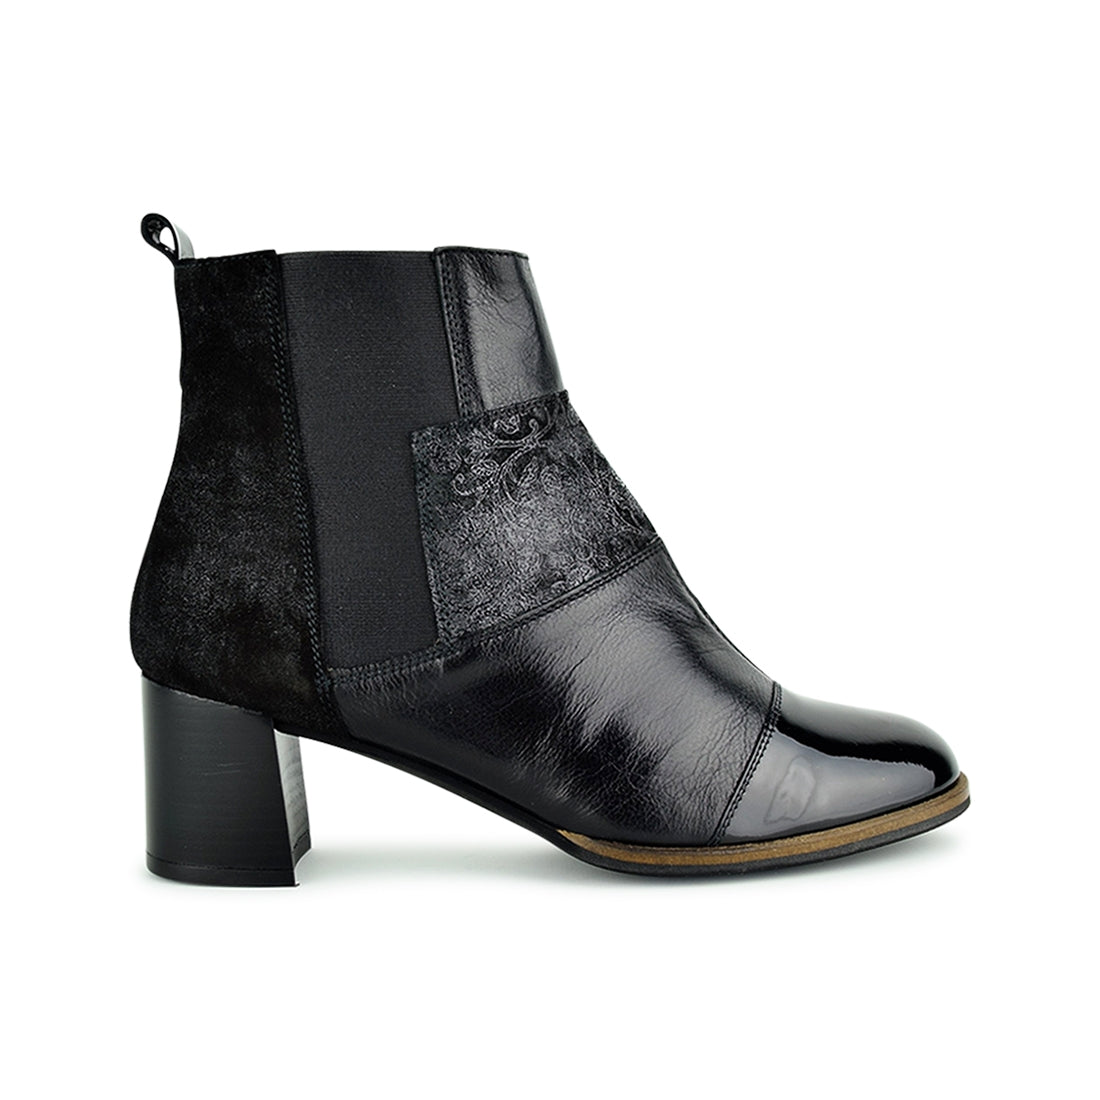 ALESS - Hispanitas Ankle Boots Black Multi